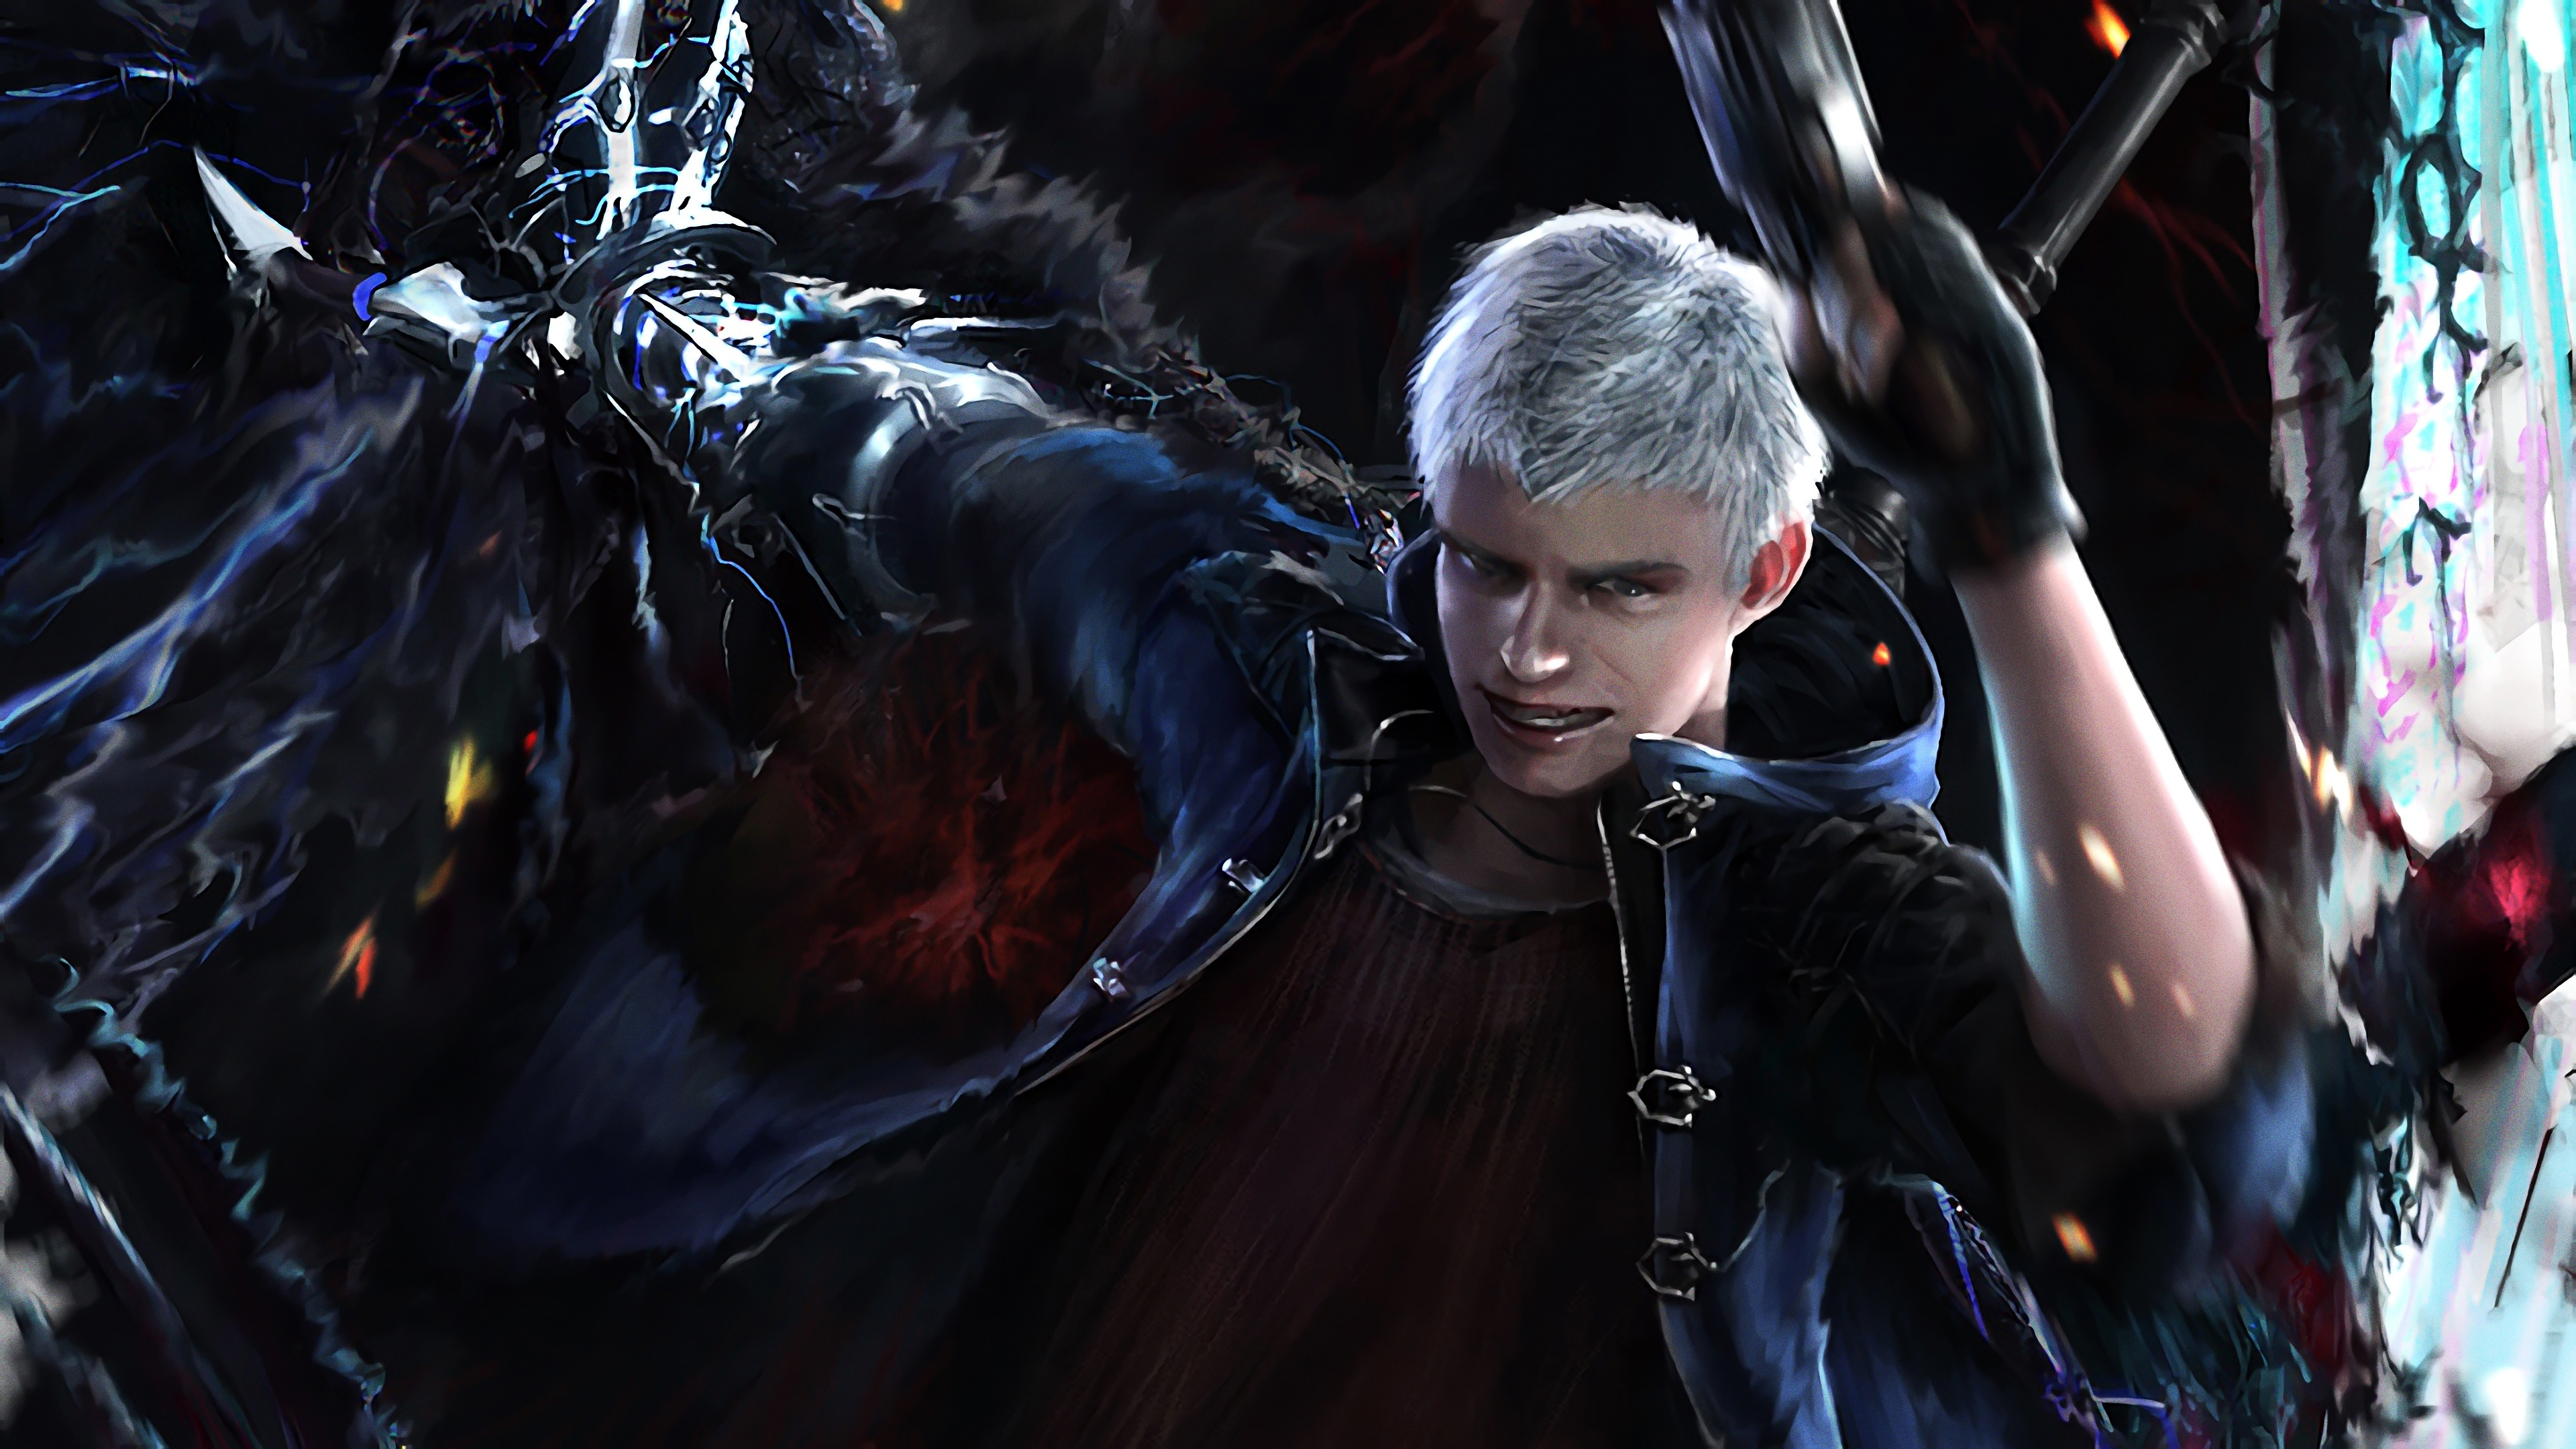 Devil May Cry 5 Nero 4k Ultra Hd Wallpaper Background